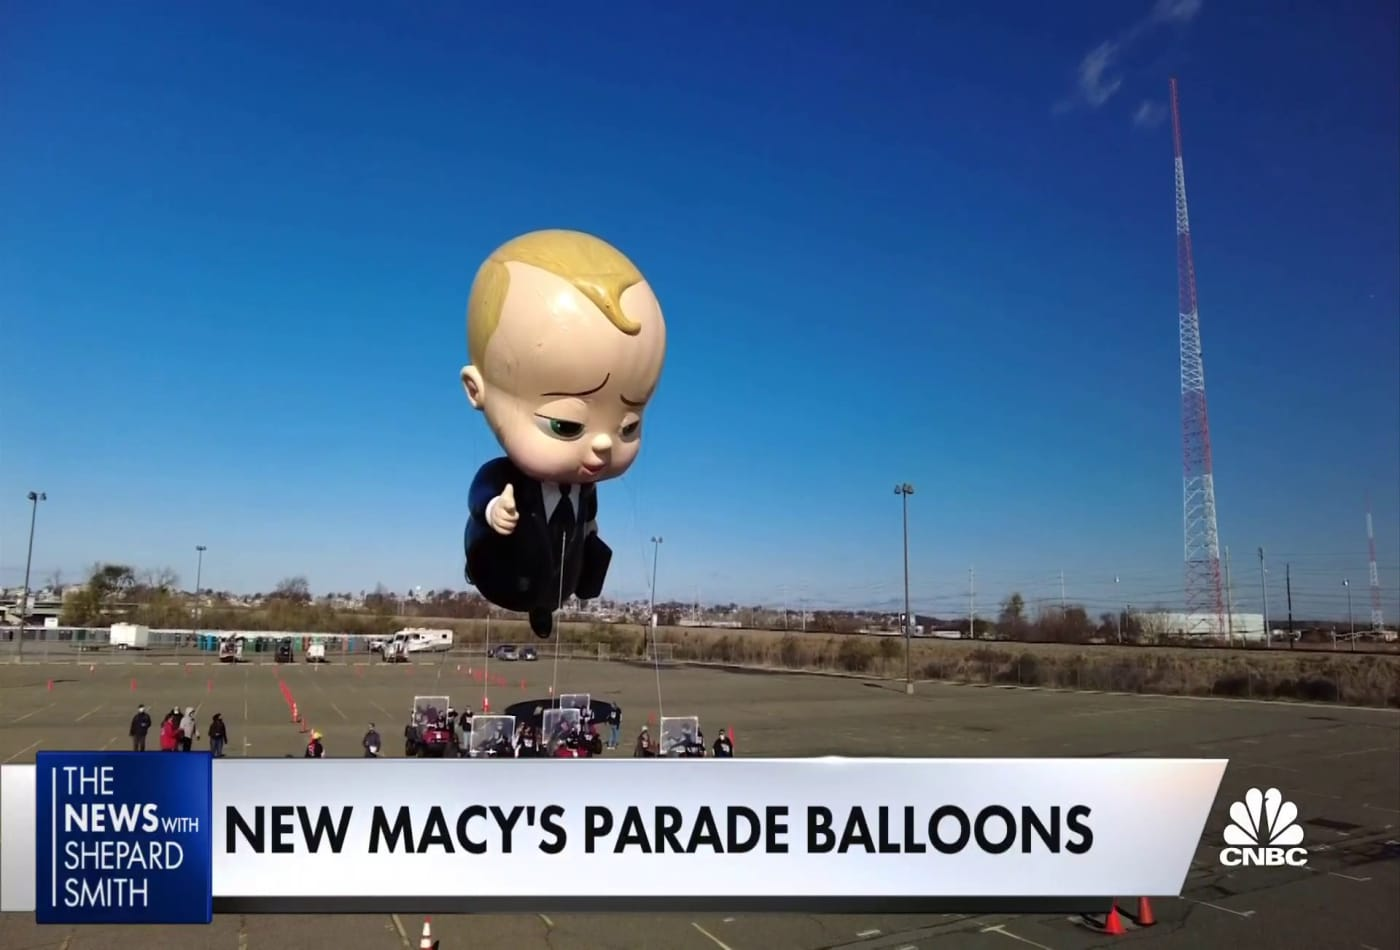 New rules for Macy's Thanksgiving Day Parade include age restrictions, no route, no crowds